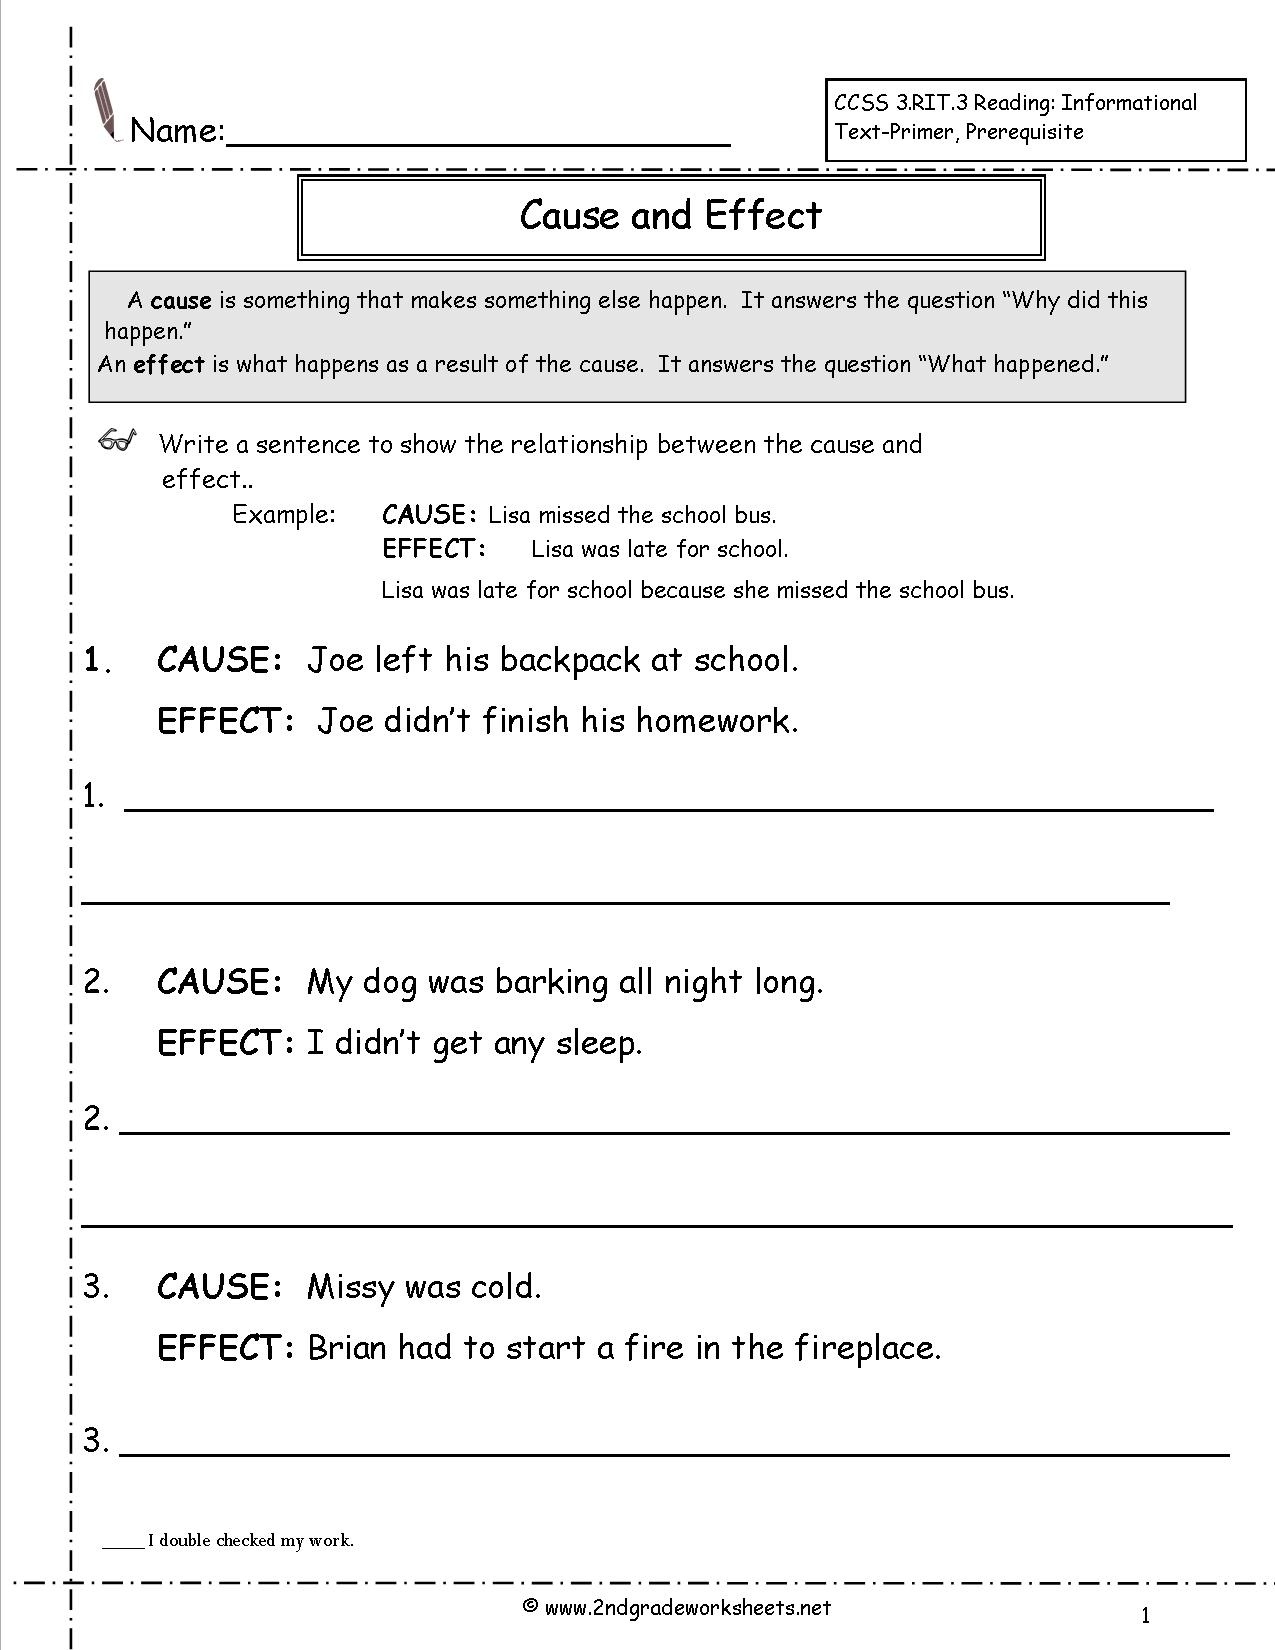 15 Best Images Of Cause And Effect Worksheets For Kindergarten